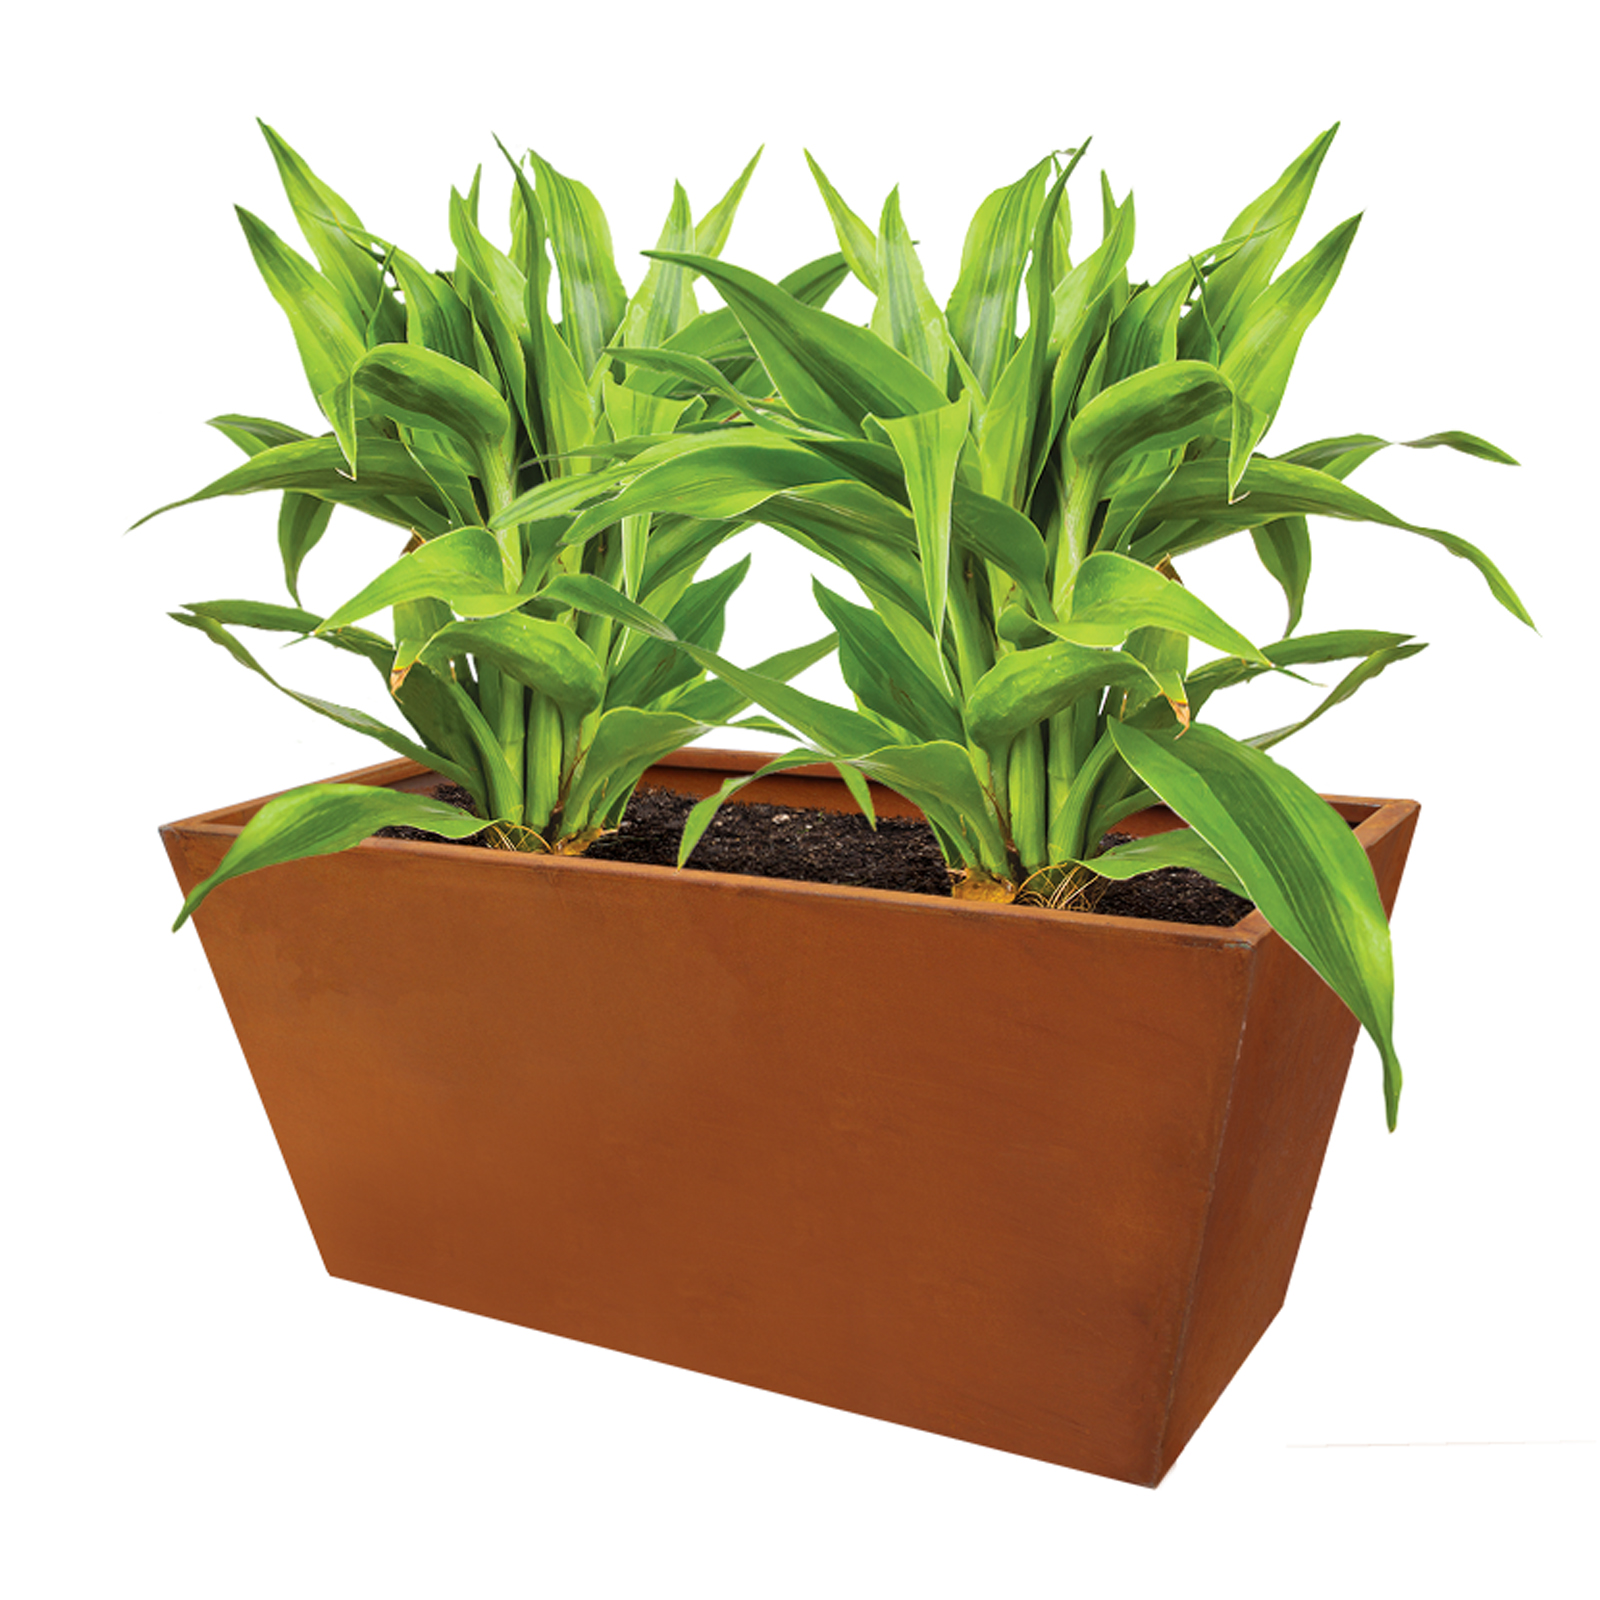 18479 casa planter with plants 870x410x405